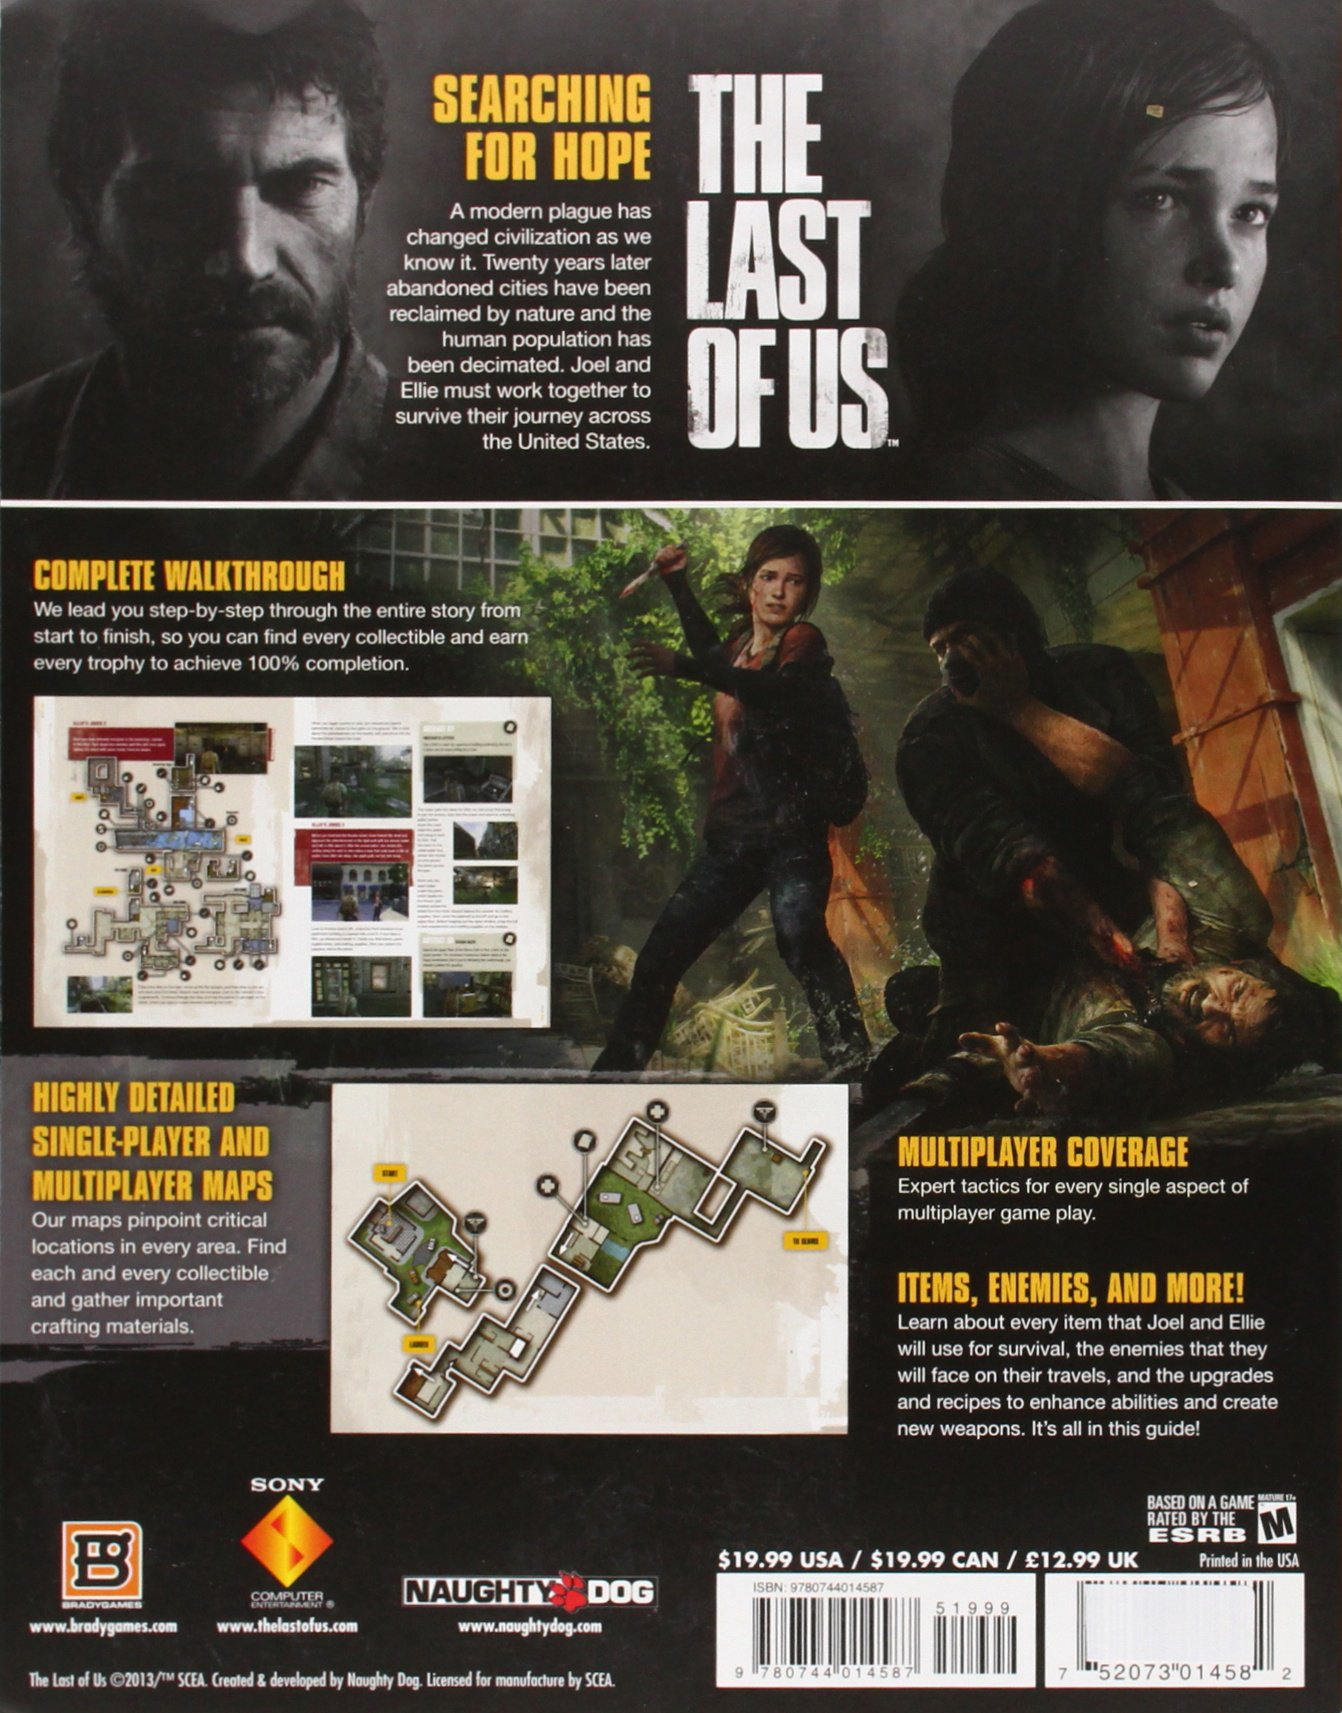 The Last Of Us Signature Series Strategy Guide BradyGames - The last of us multiplayer maps